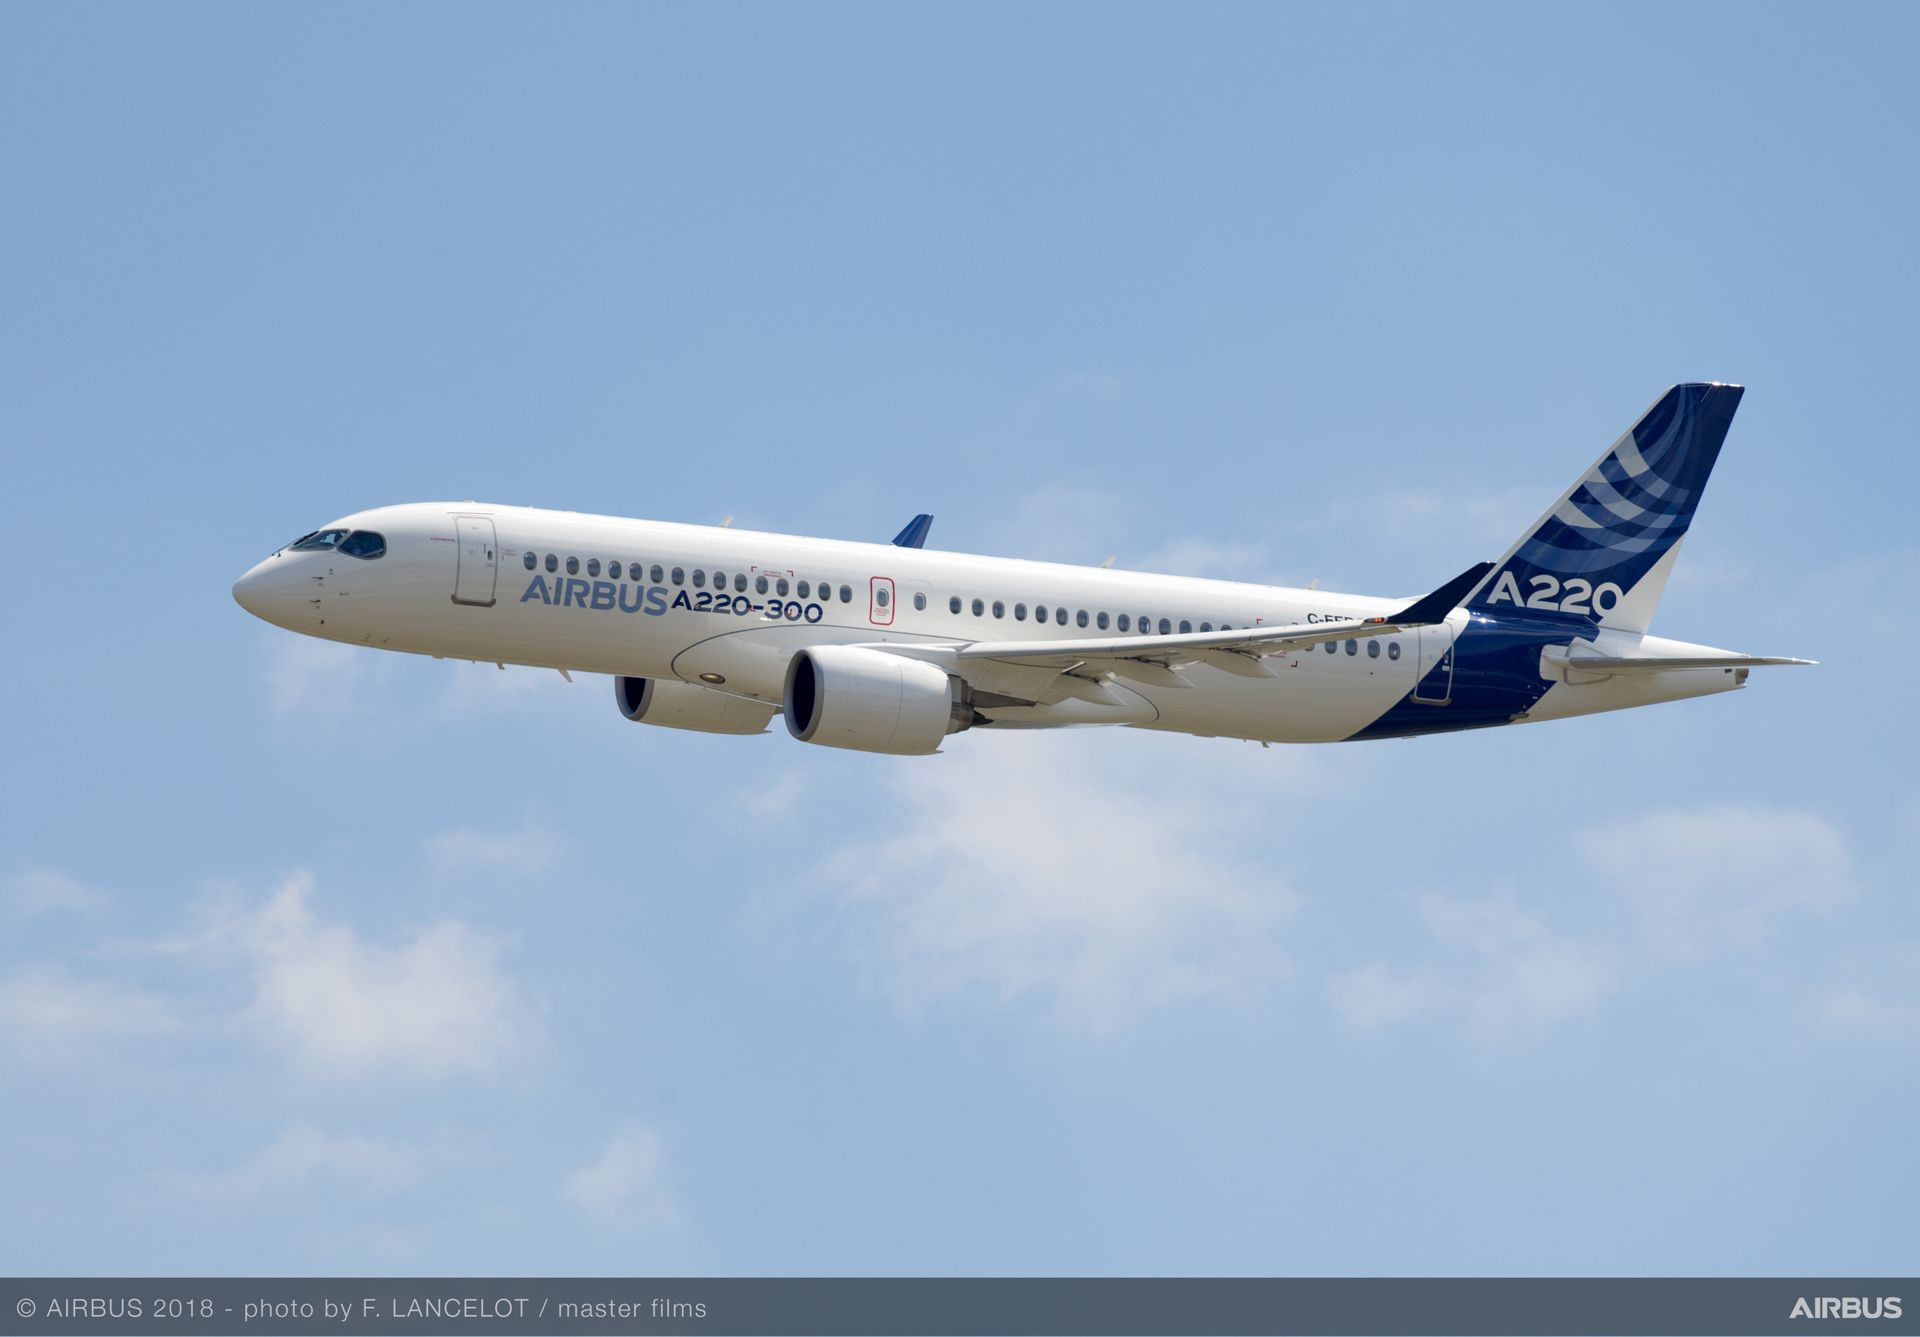 [Image: Airbus-A220-300-new-member-of-the-airbus...1&qlt=85,0]